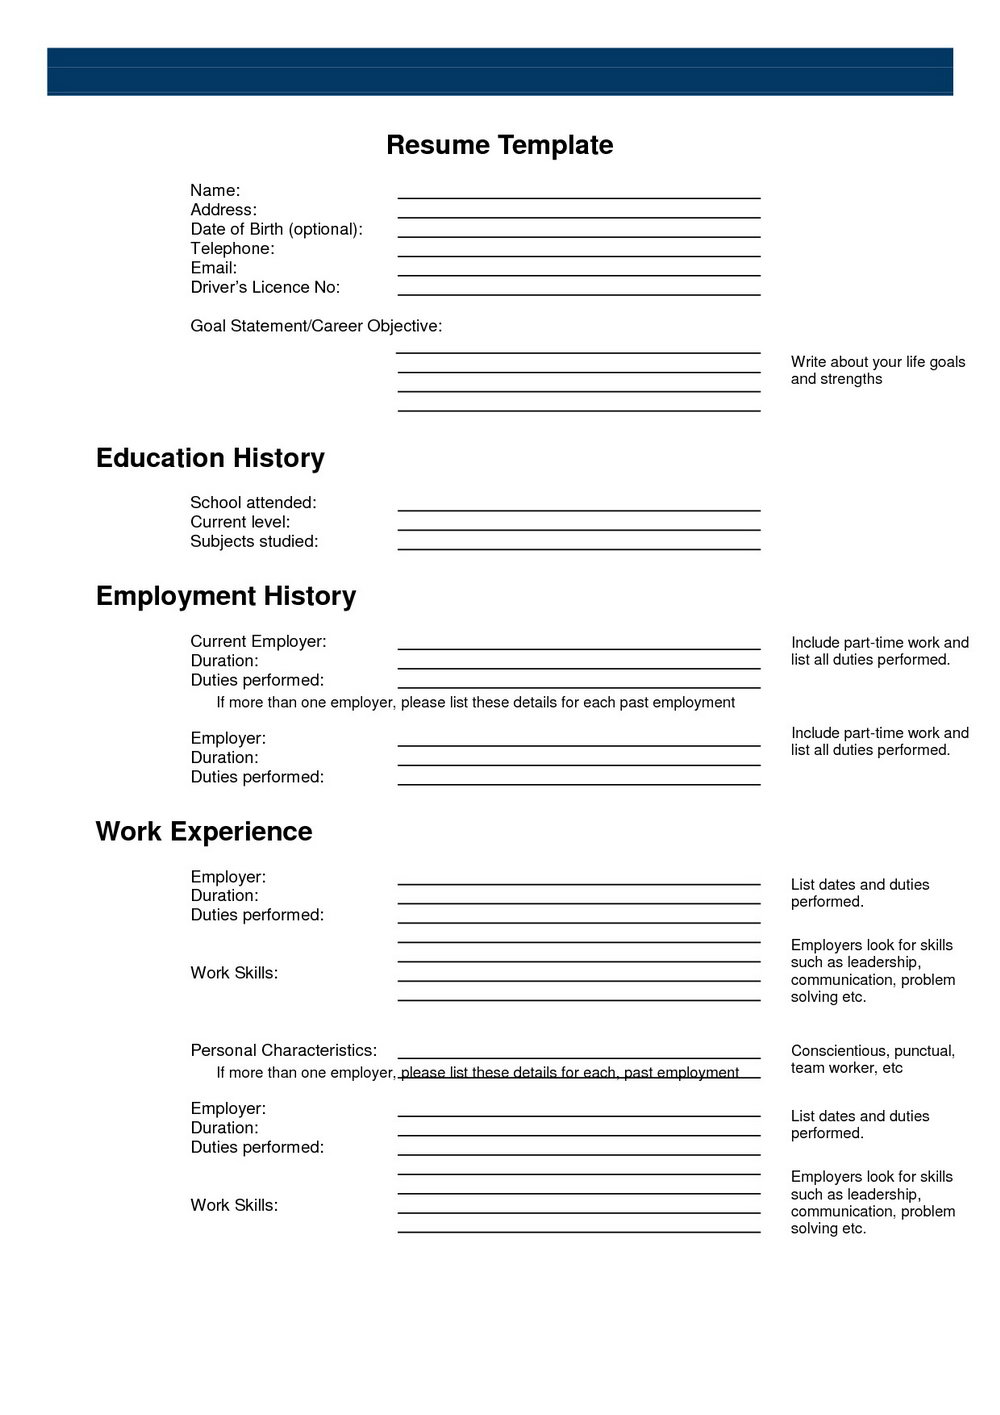 Free Resume Templates Print Out